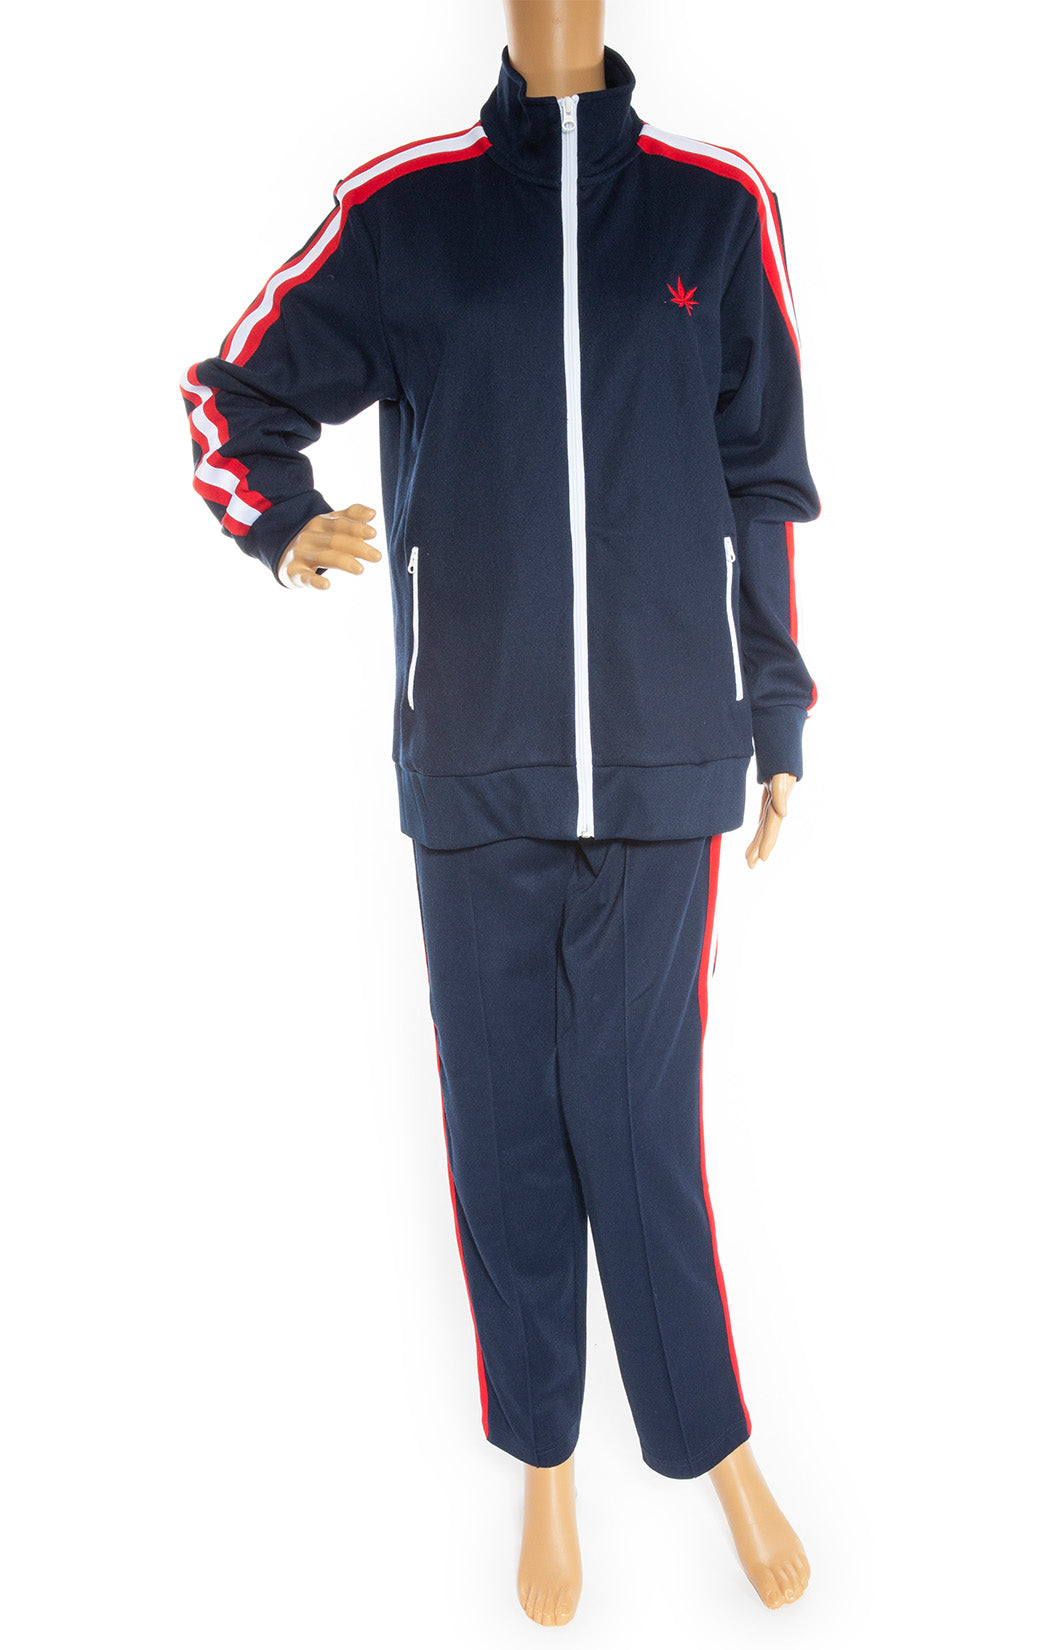 Front view of BOAST Tracksuit Size: Medium